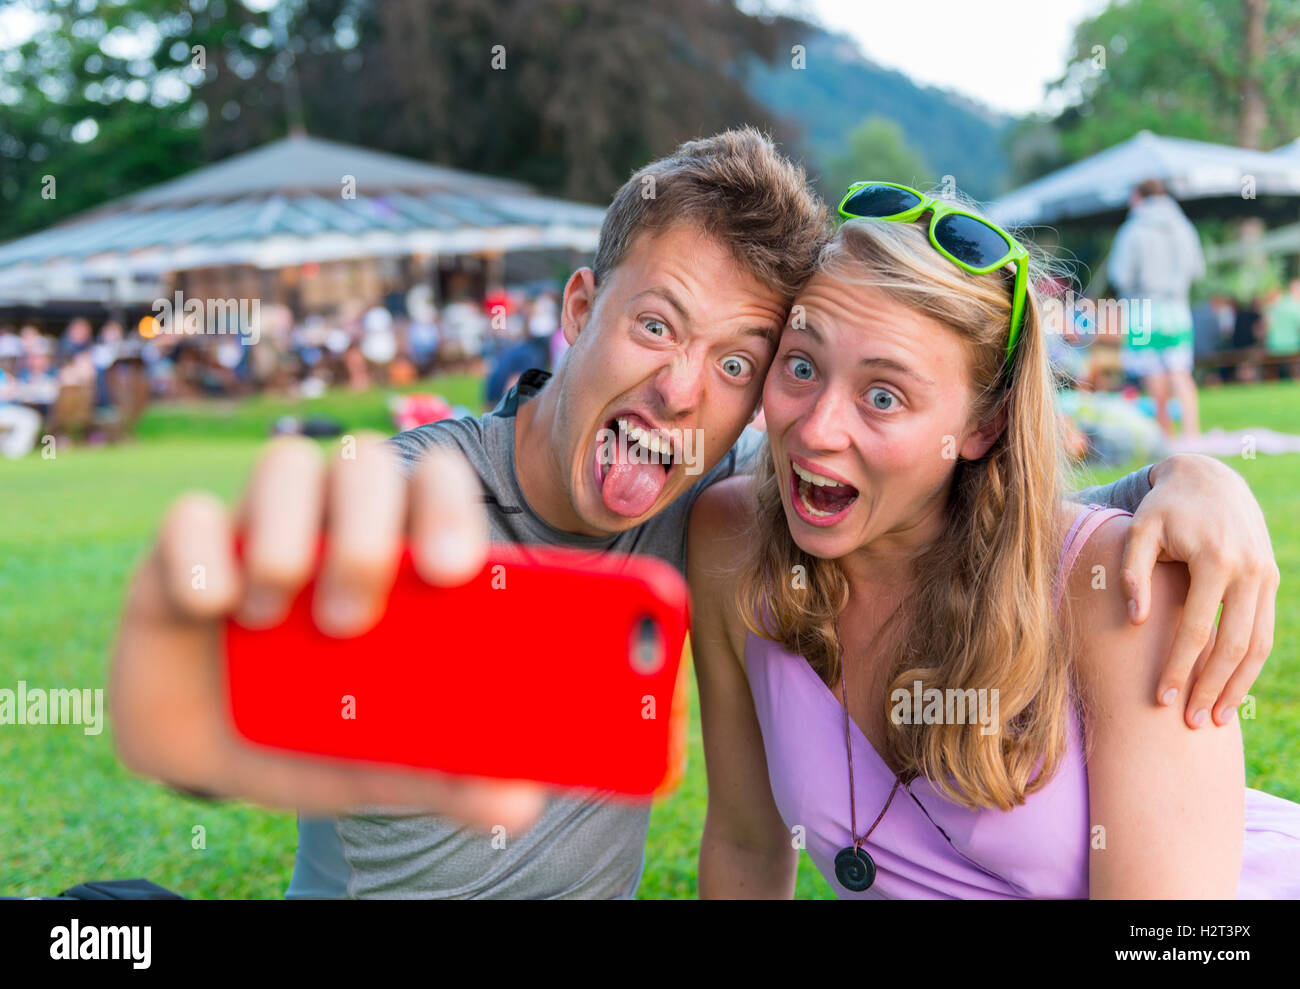 Young man and young woman making faces, taking photo with mobile phone, selfie, Bavaria, Germany - Stock Image